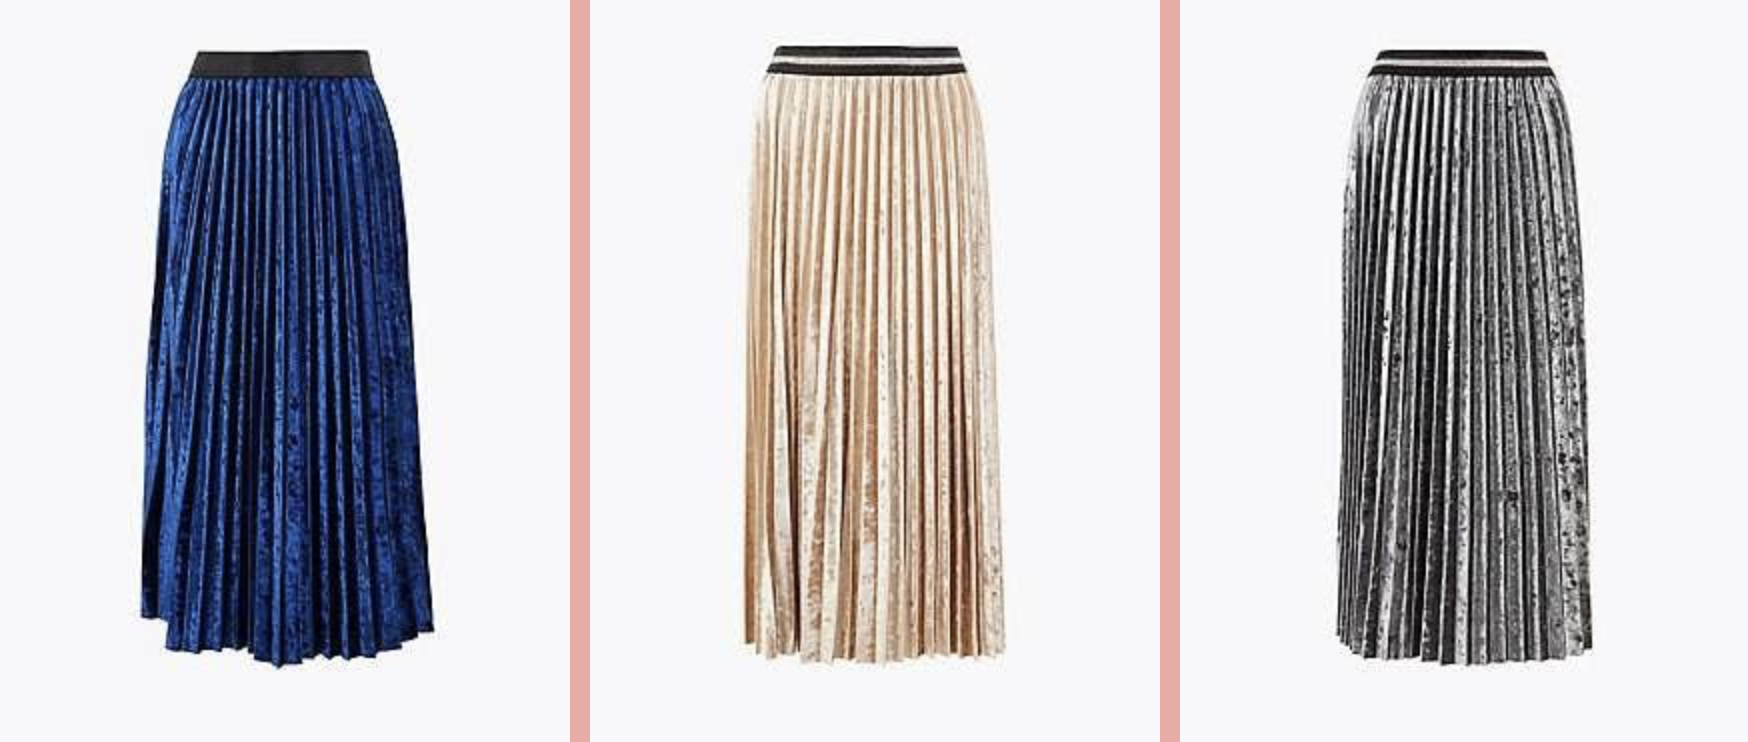 m and s pleated skirts